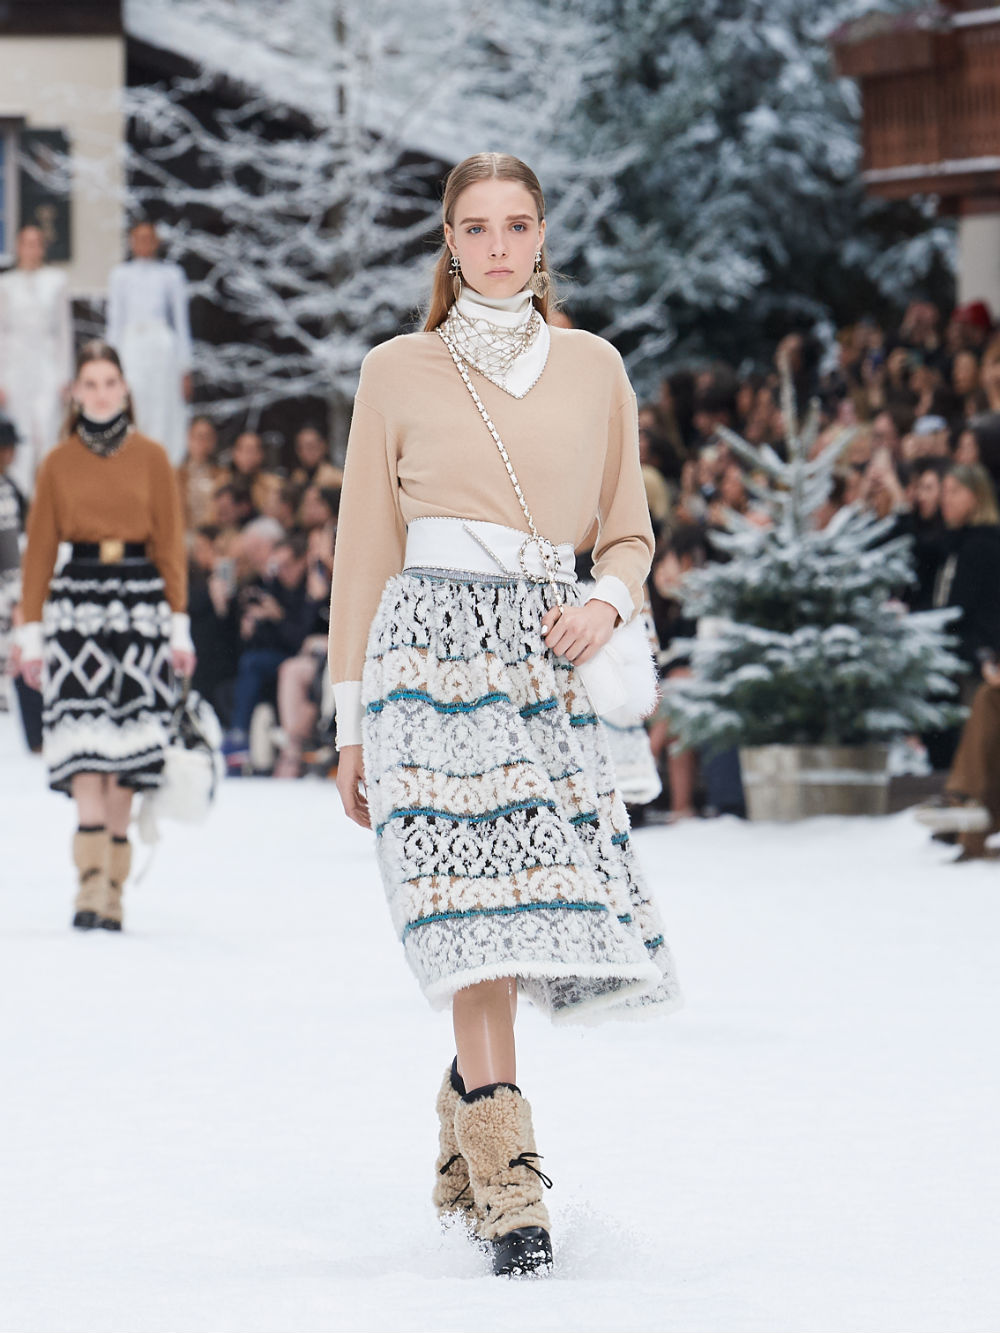 FALL-WINTER 201920 READY-TO-WEAR COLLECTION (17)